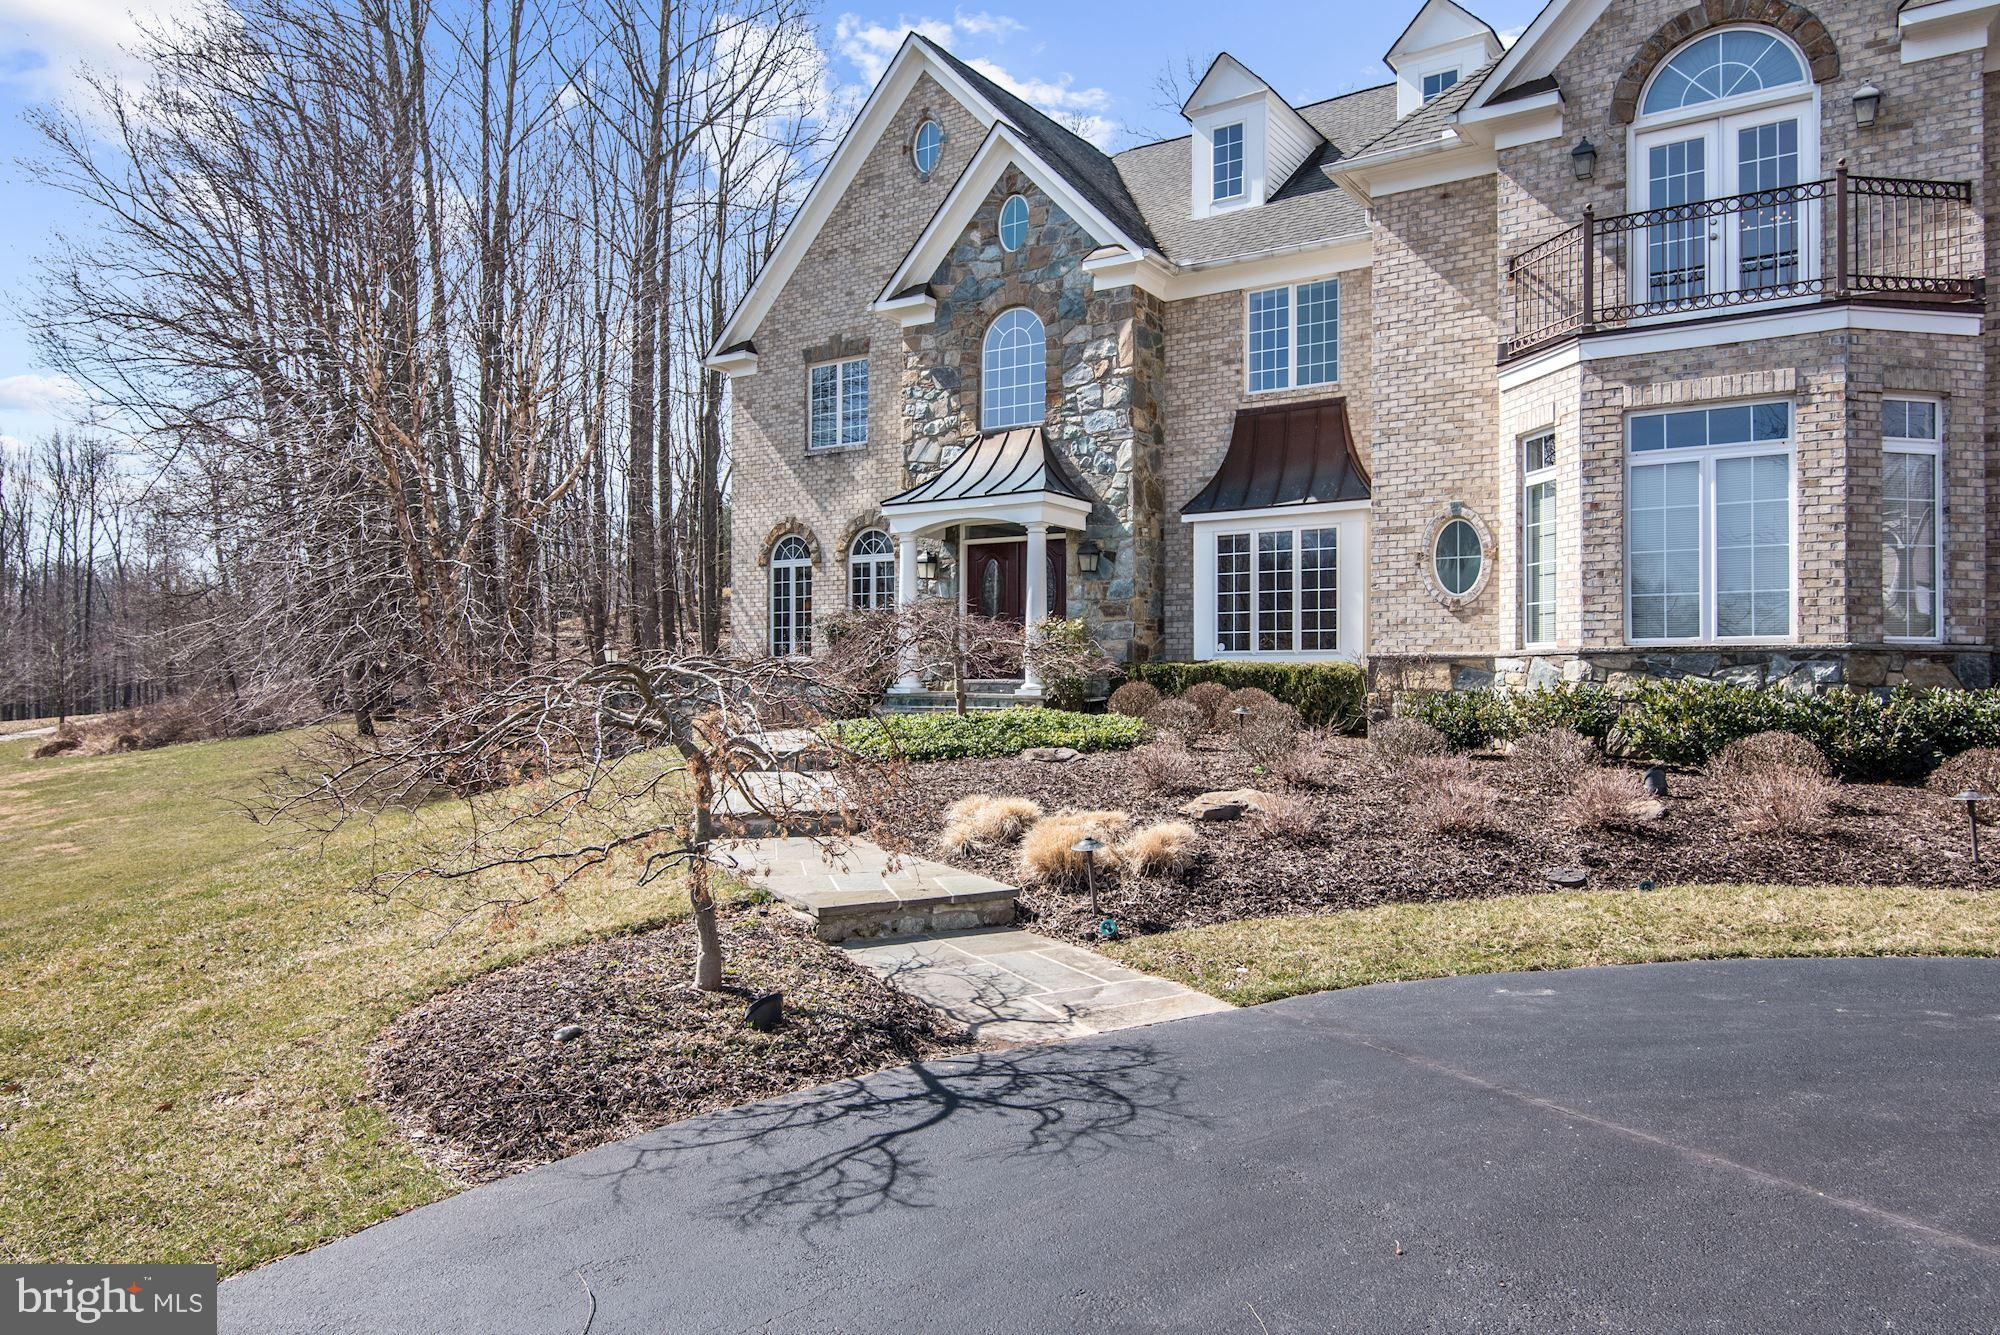 19416 PYRITE LANE, BROOKEVILLE, MD 20833